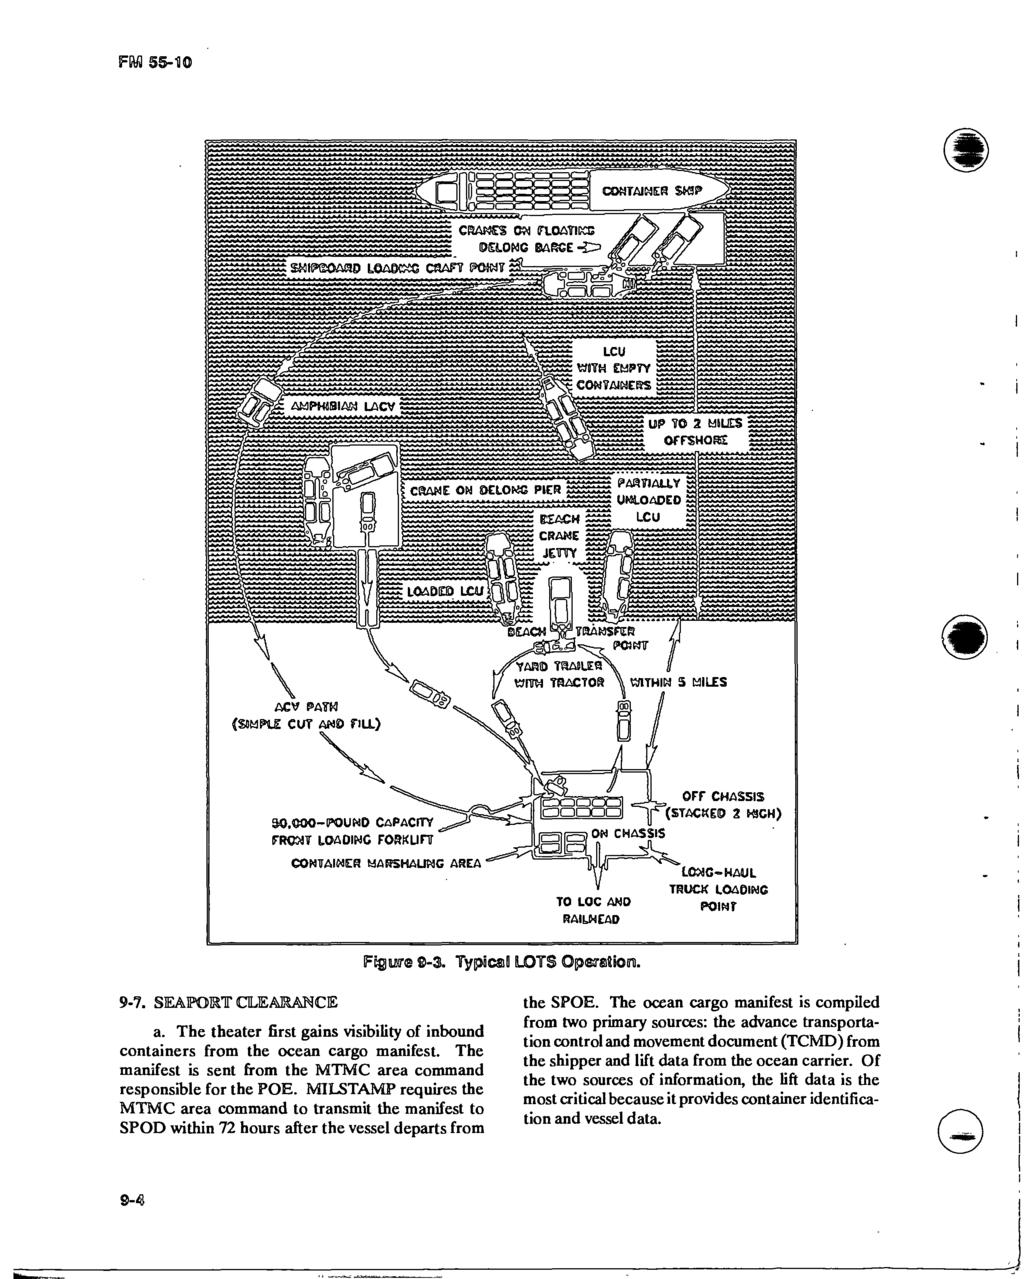 Sssss Movement Control In A Theater Of Operations Fjfy Fm Spod Wiring Diagram F Wj 55 10 0 Container Swp Cranes On Ploaticce